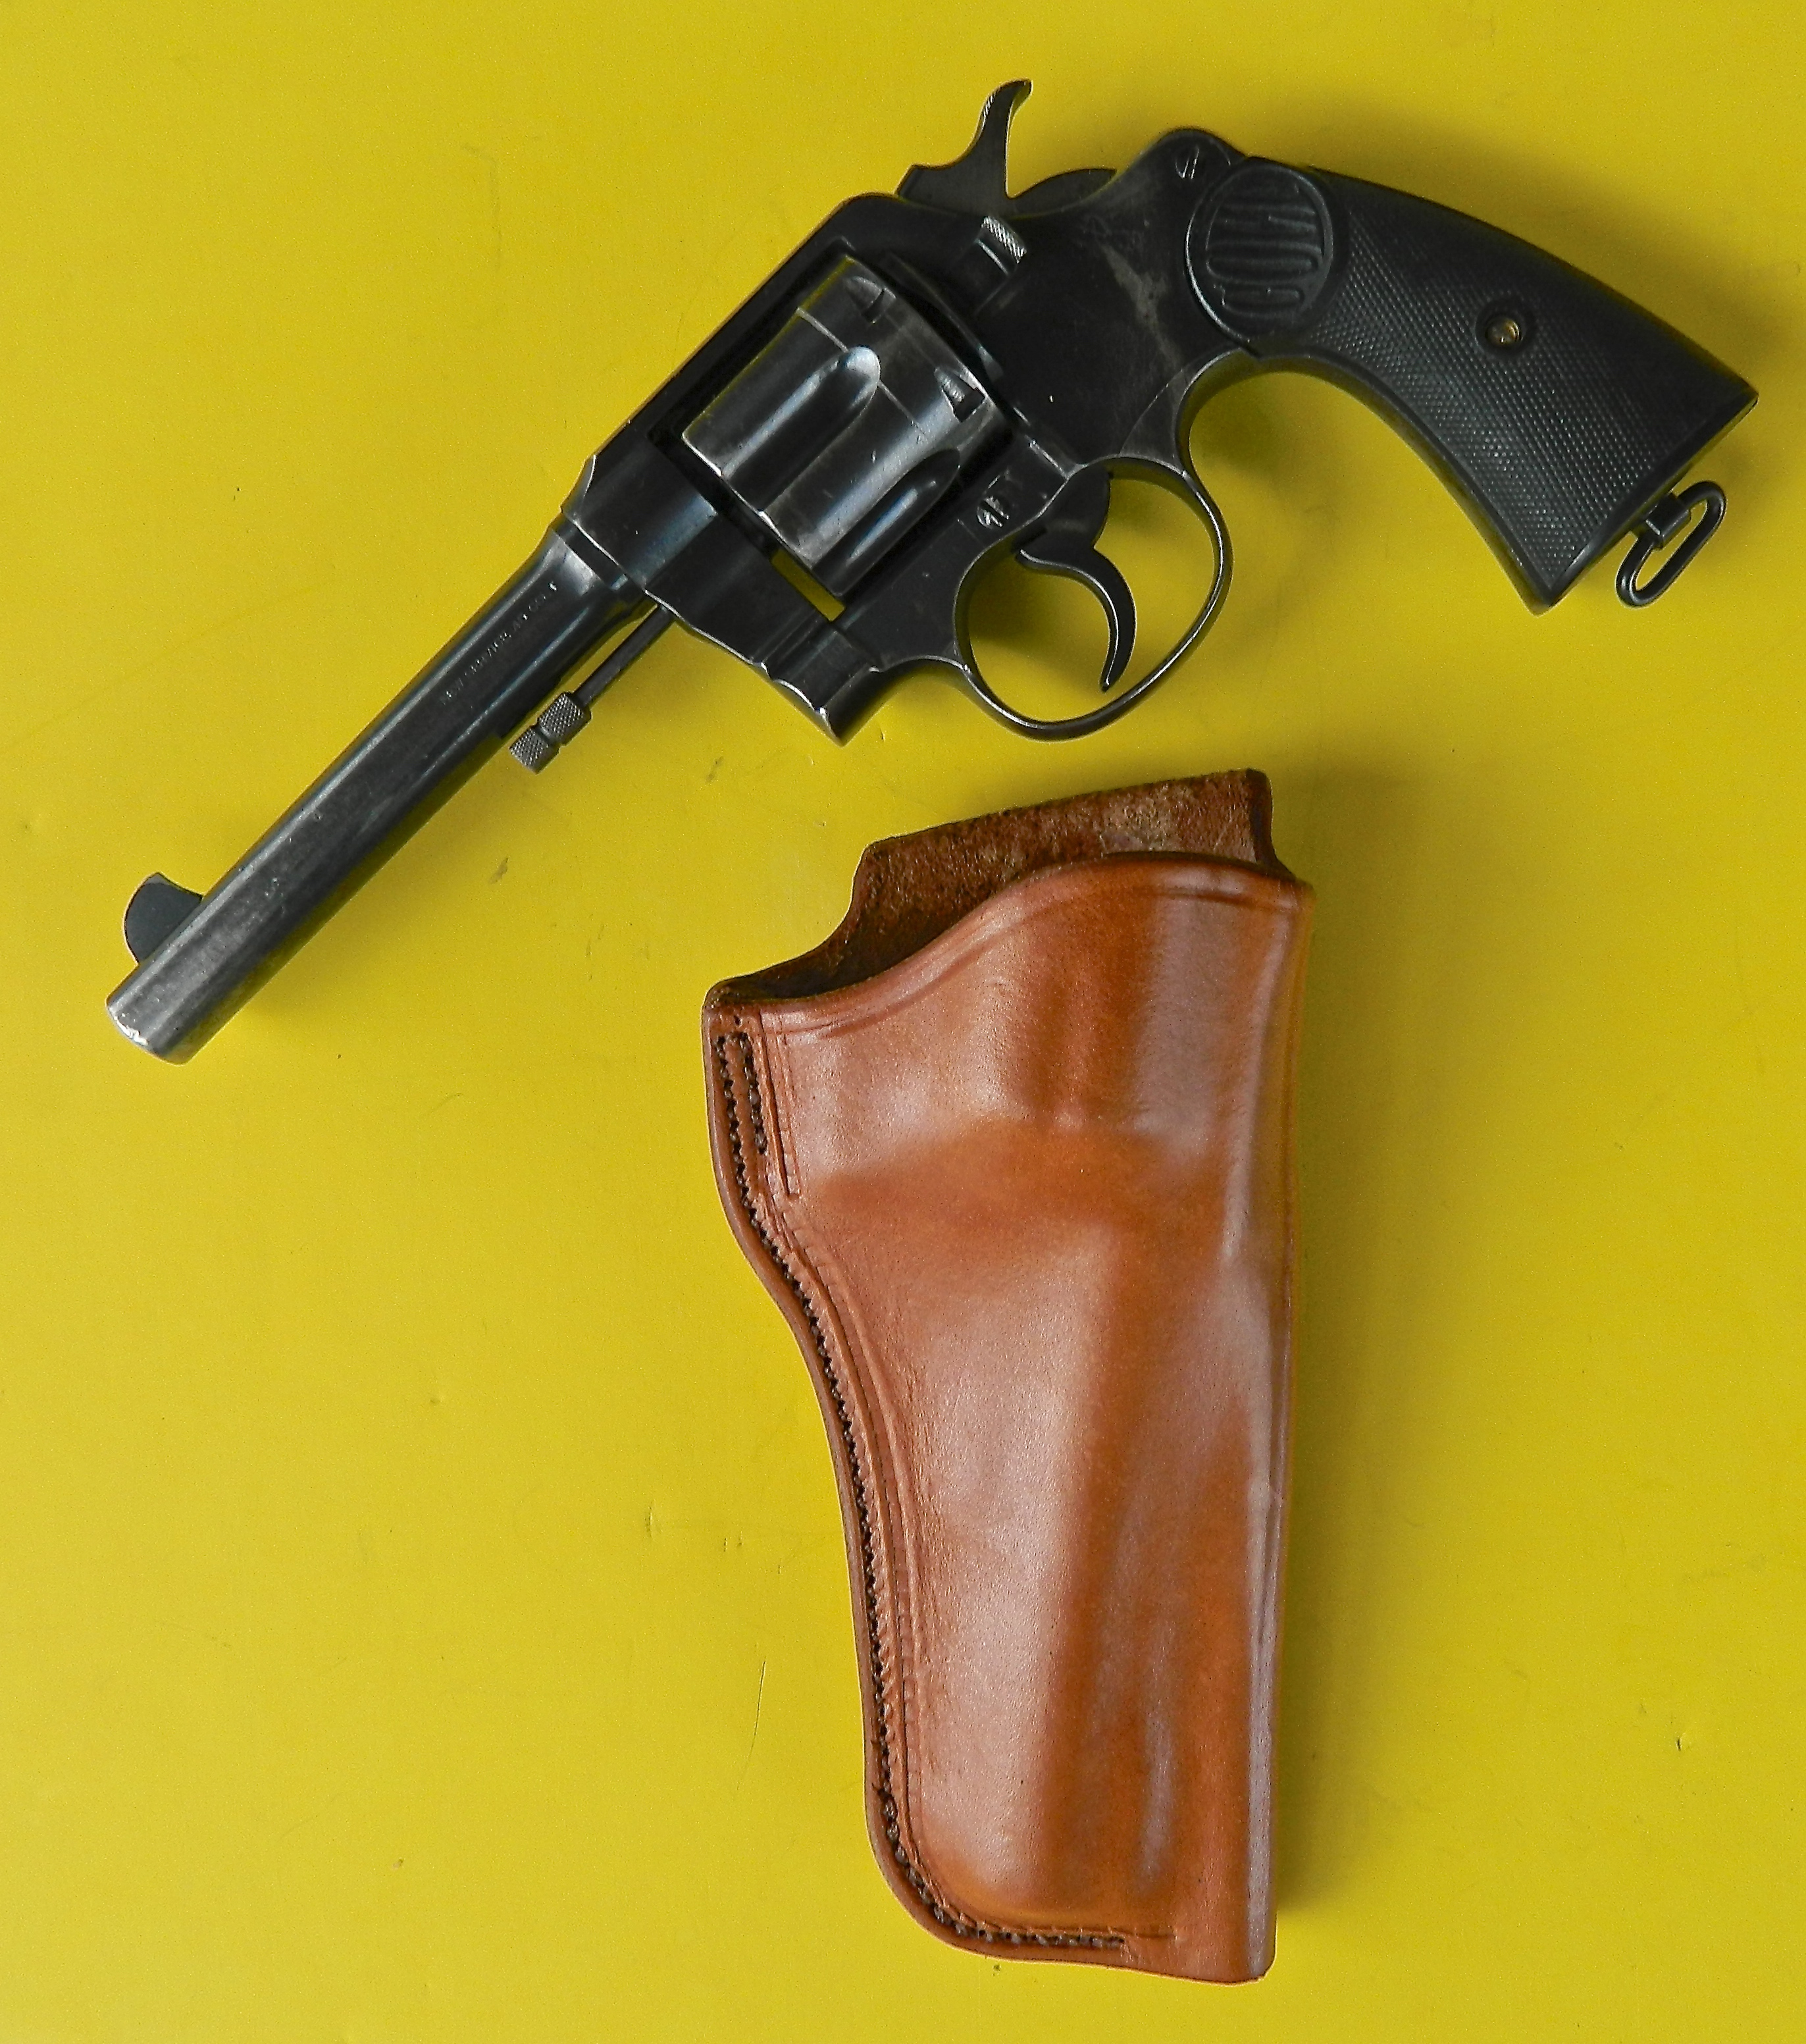 lawful carry simply rugged holsters model 120 s w a t magazine